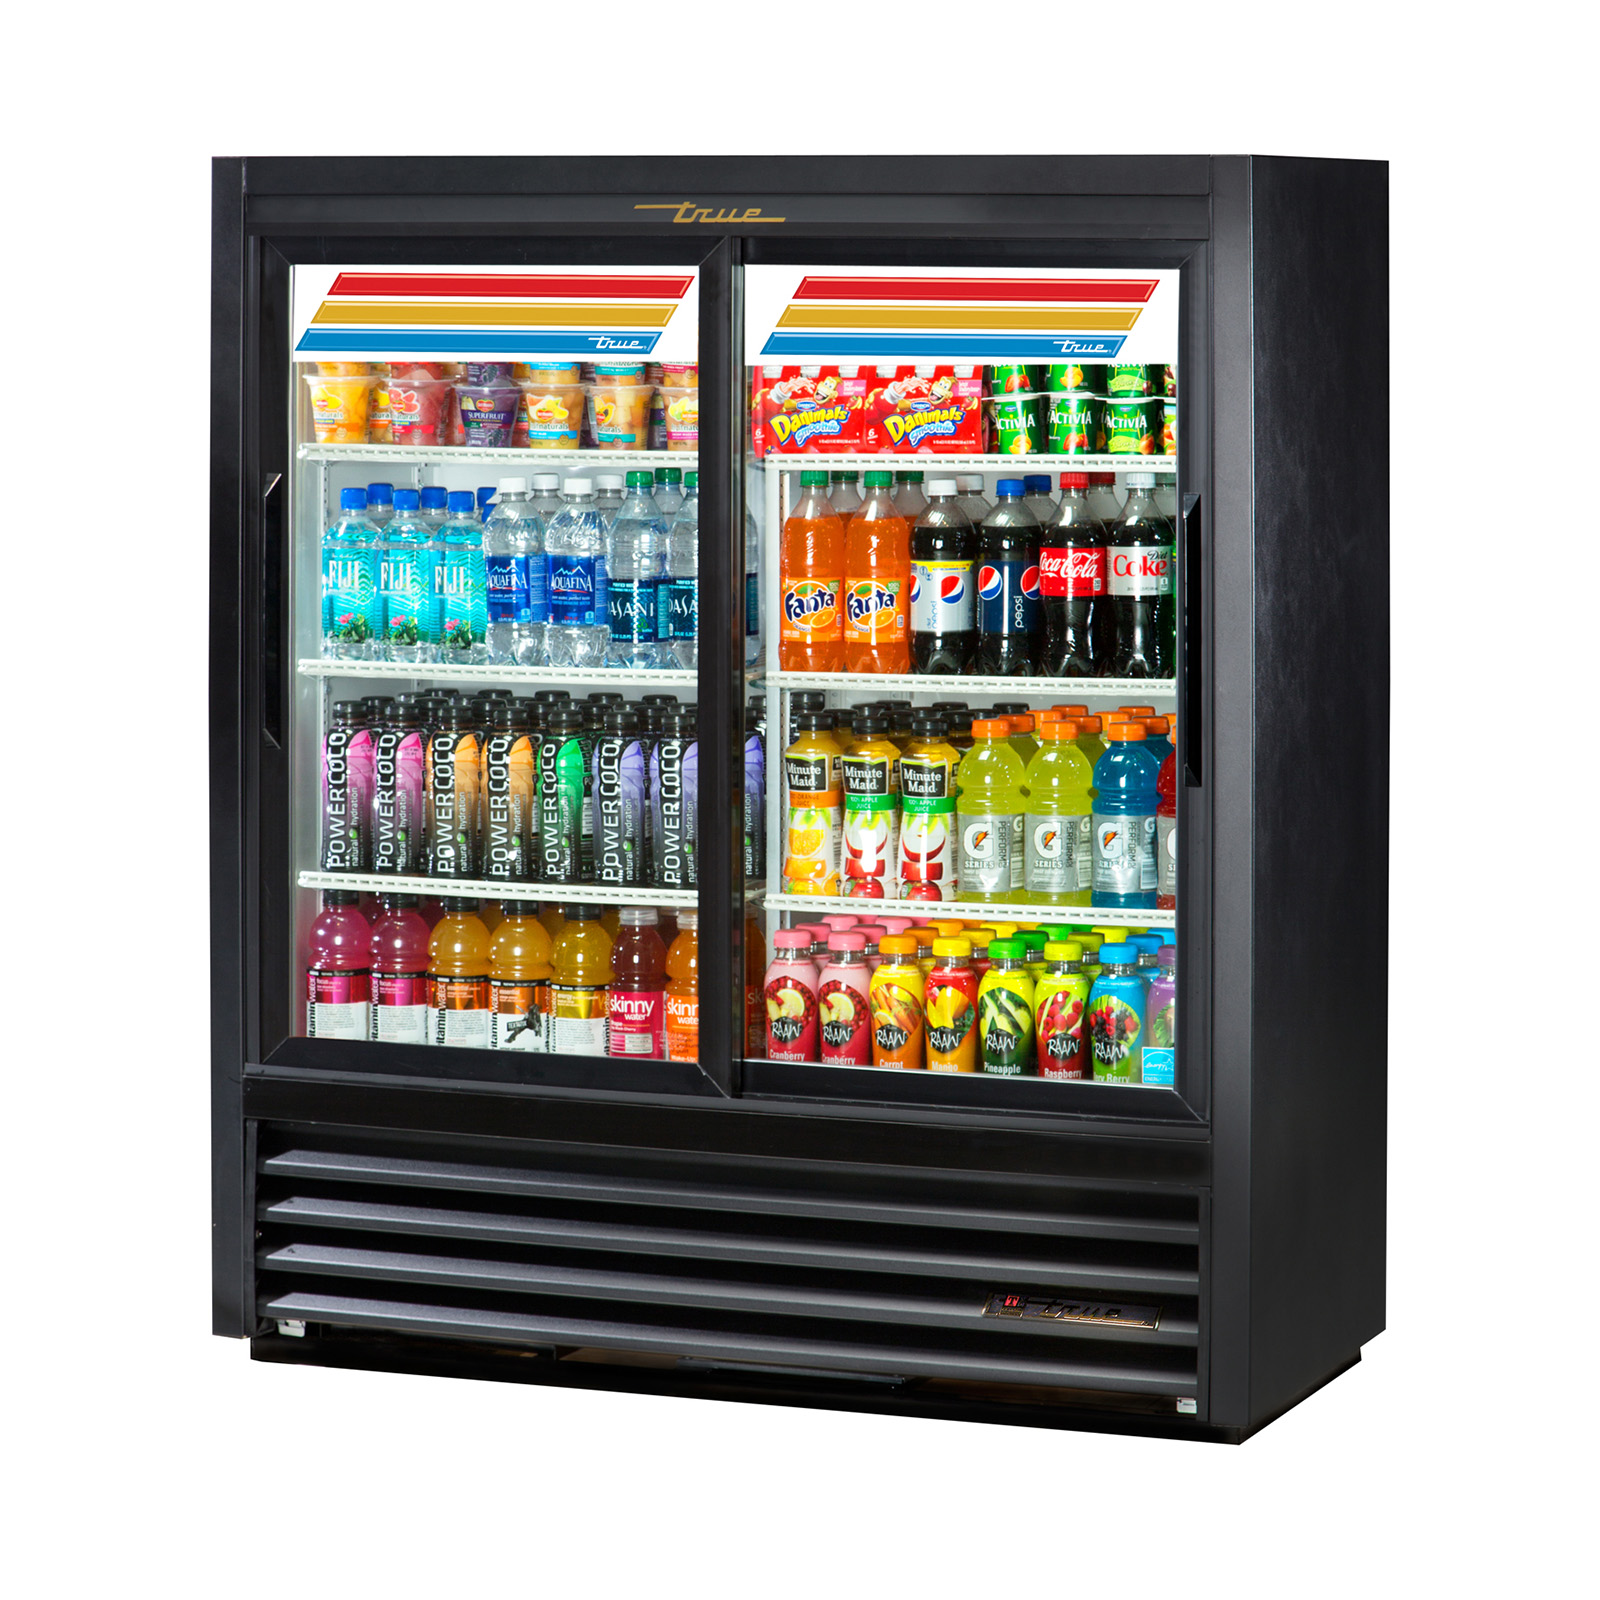 GDM-41SL-54-HC-LD True - Convenience Store Cooler two-section